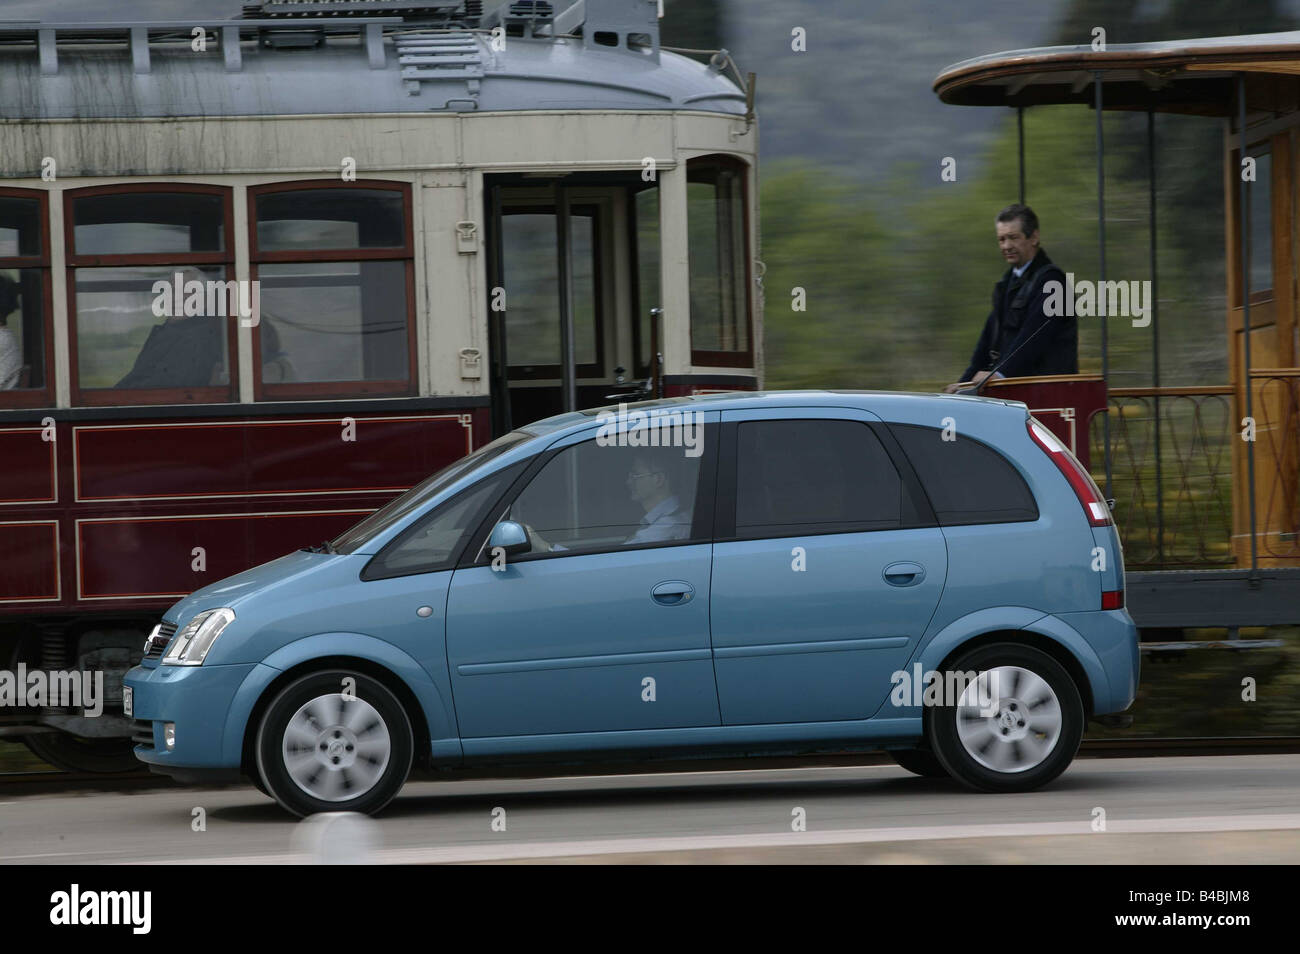 car opel meriva van limousine model year 2003 light stock photo royalty free image. Black Bedroom Furniture Sets. Home Design Ideas